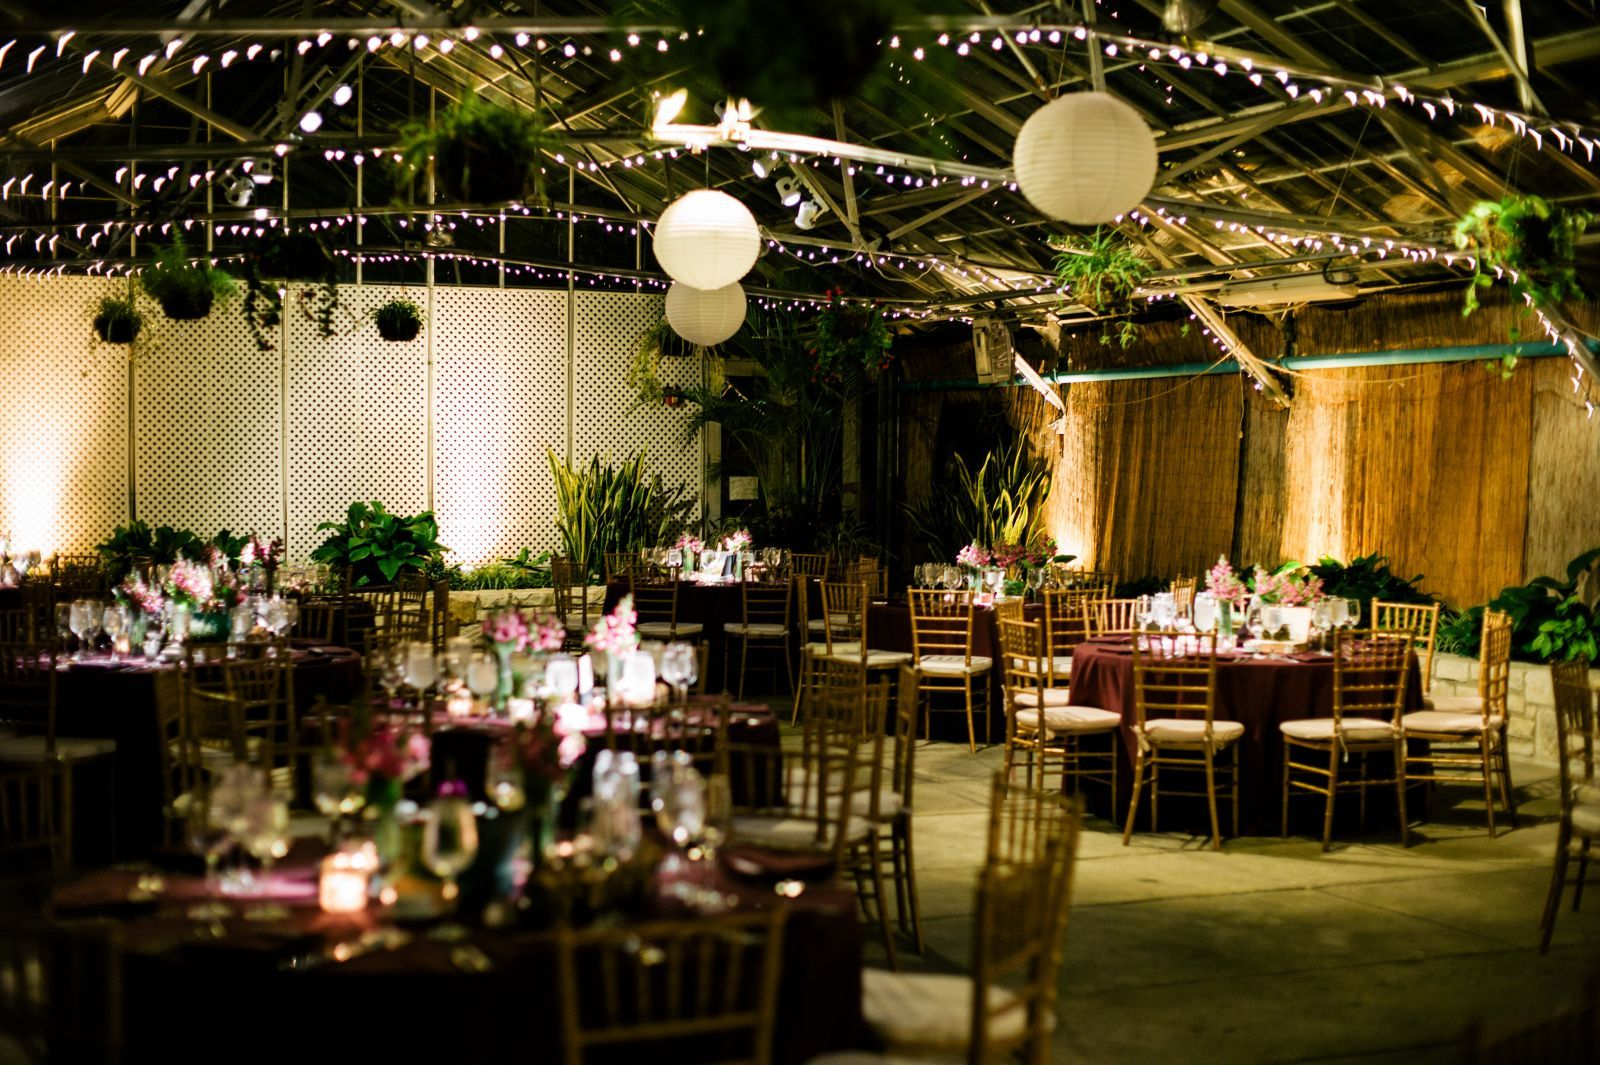 Fairmount park horticulture center garden outdoor for Outside venues for weddings